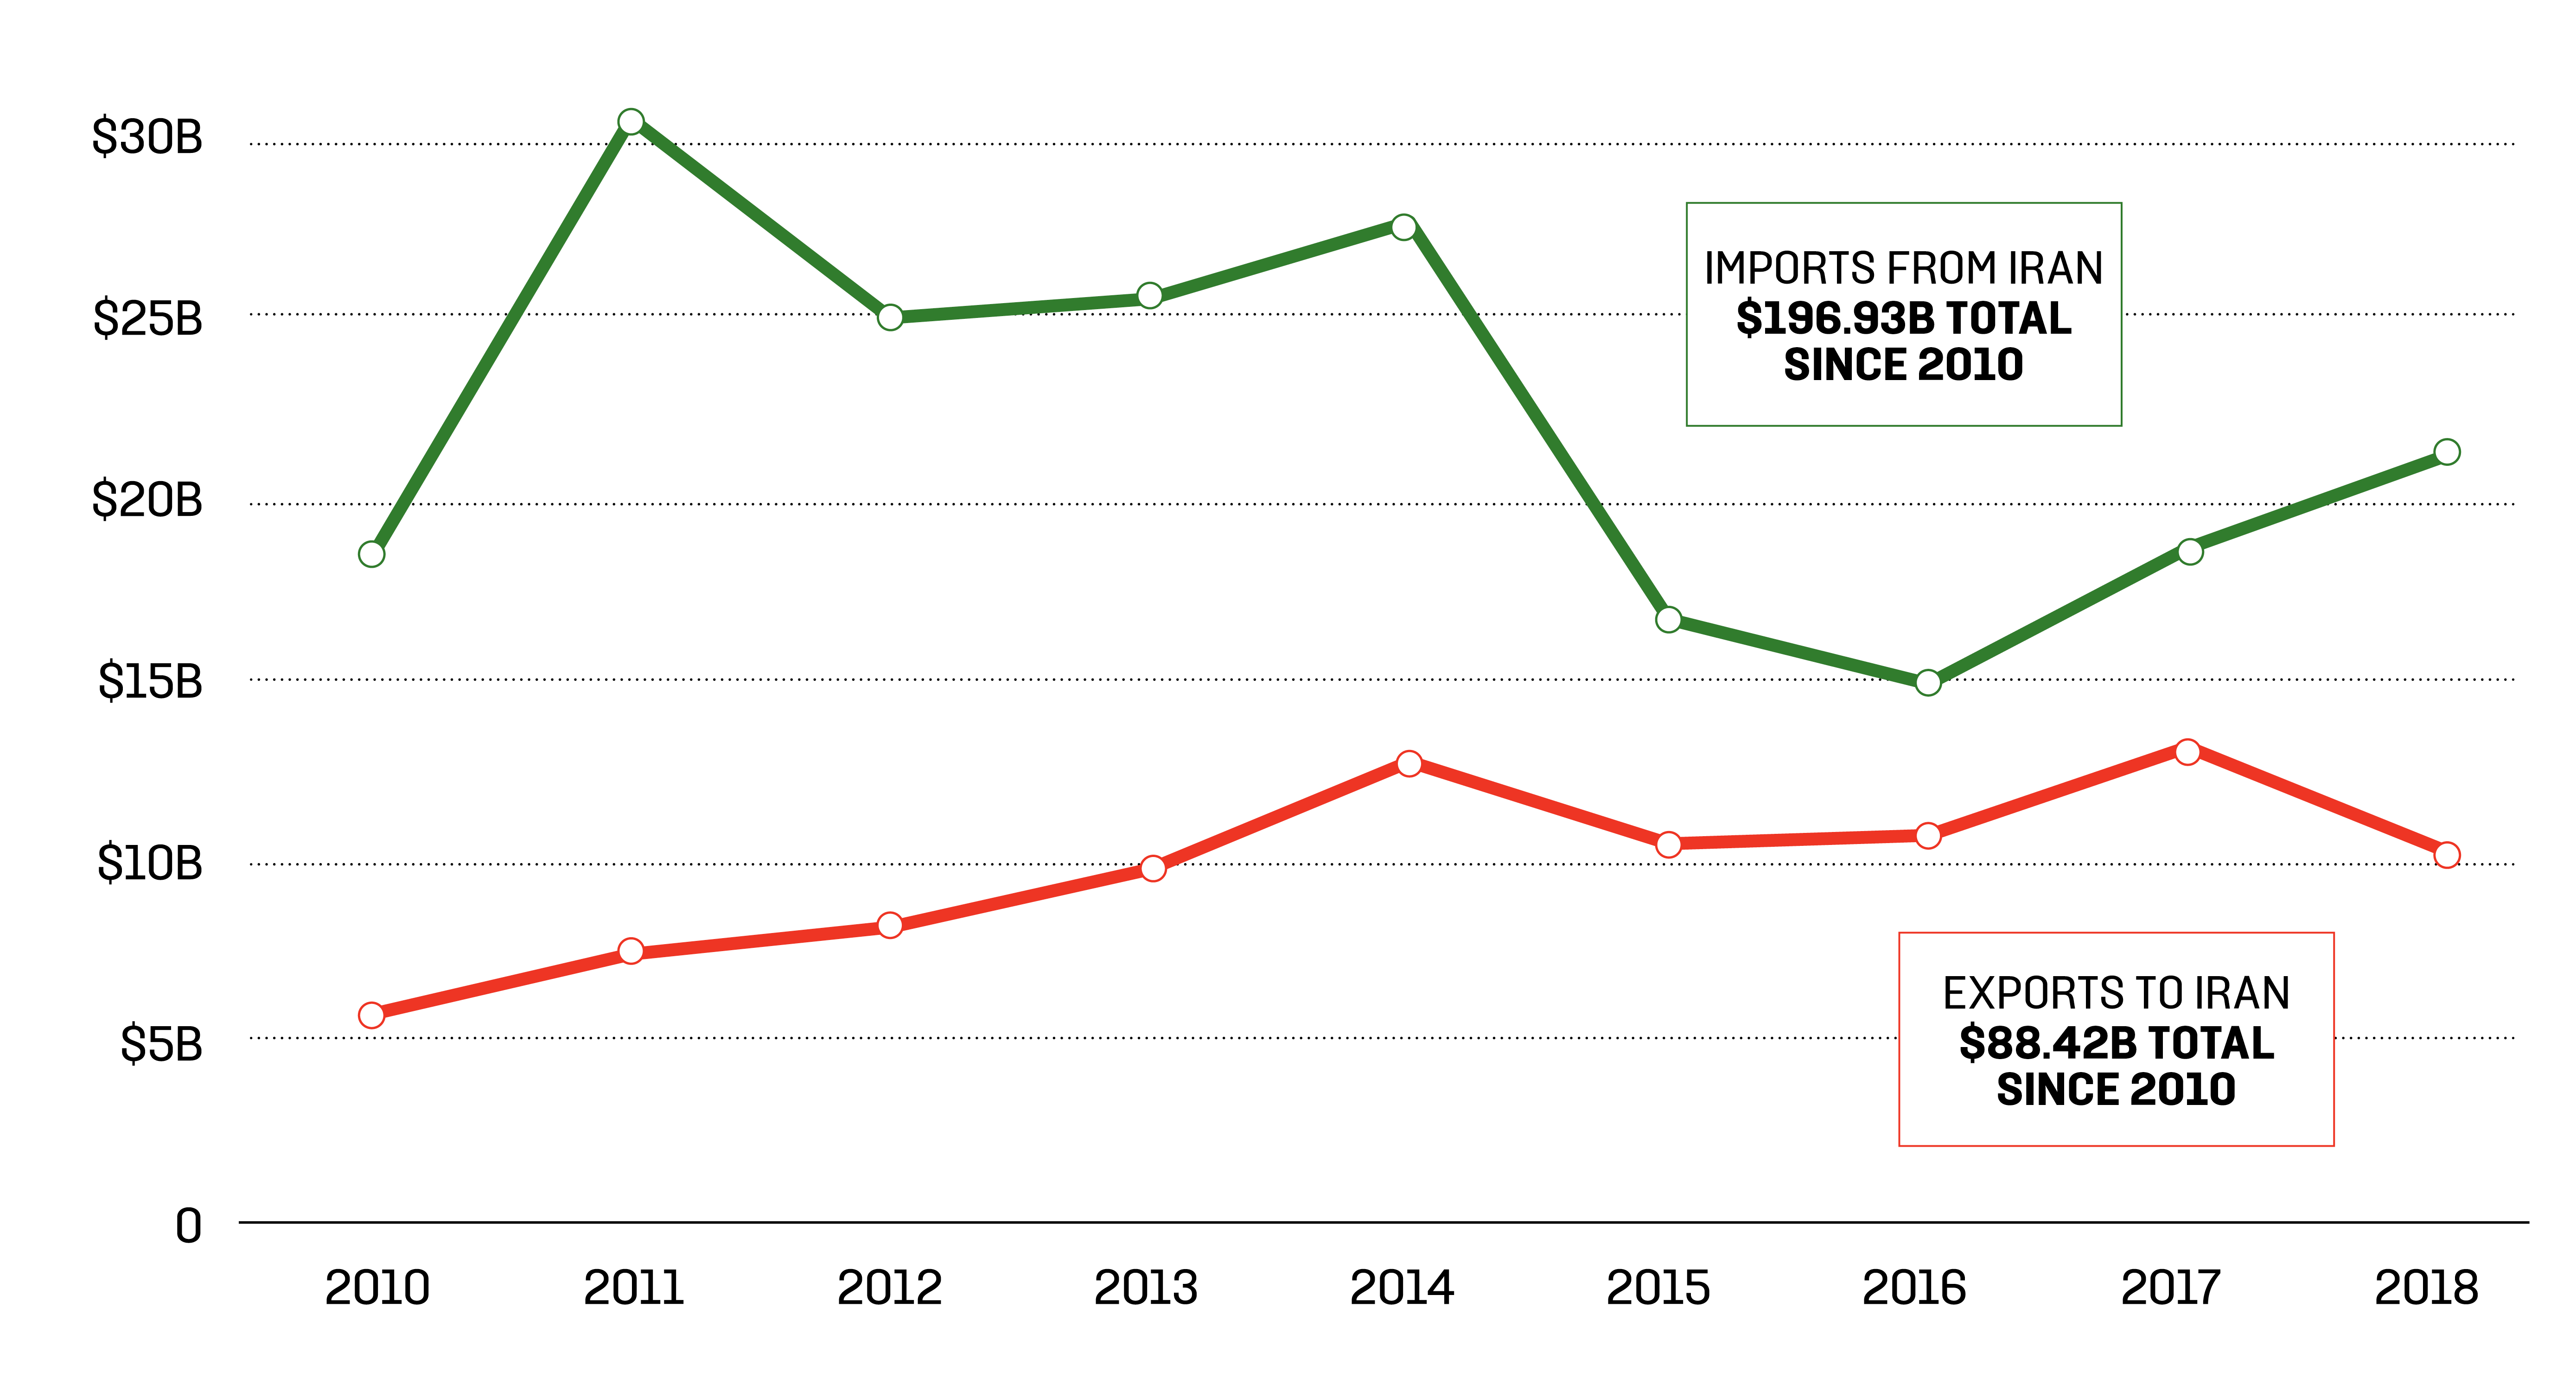 China's Trade With IranImports and exports since 2010, in billions USD